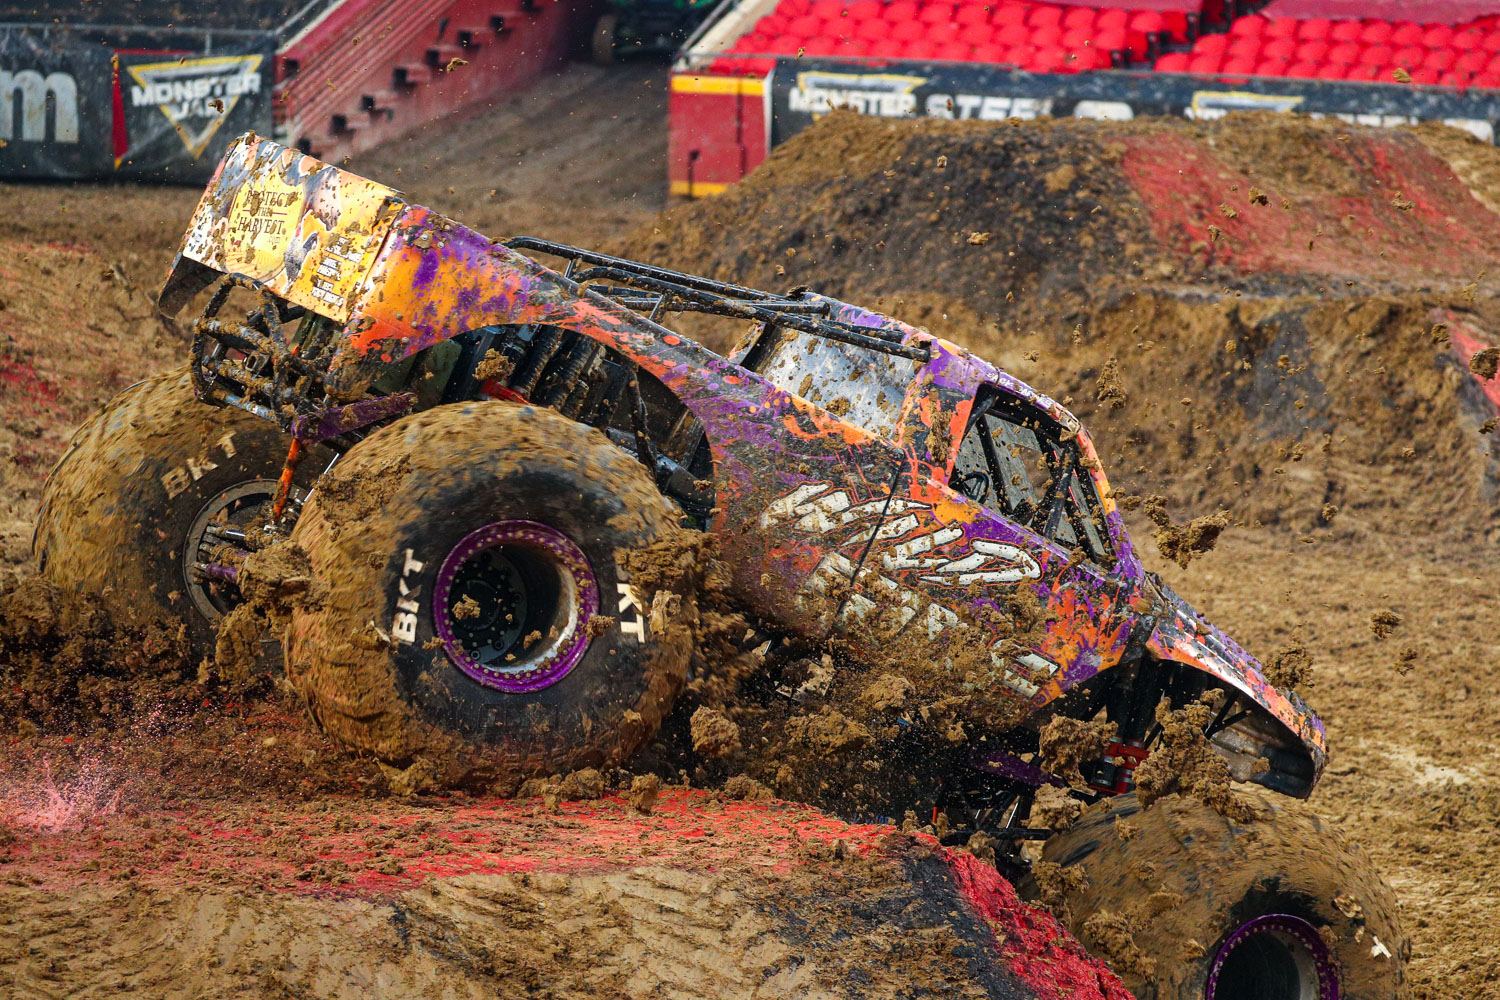 Wild Side Wrecking Machine, driven by Zack Garner during Monster Jam at GEHA Field at Arrowhead on Saturday evening, June 26, 2021.